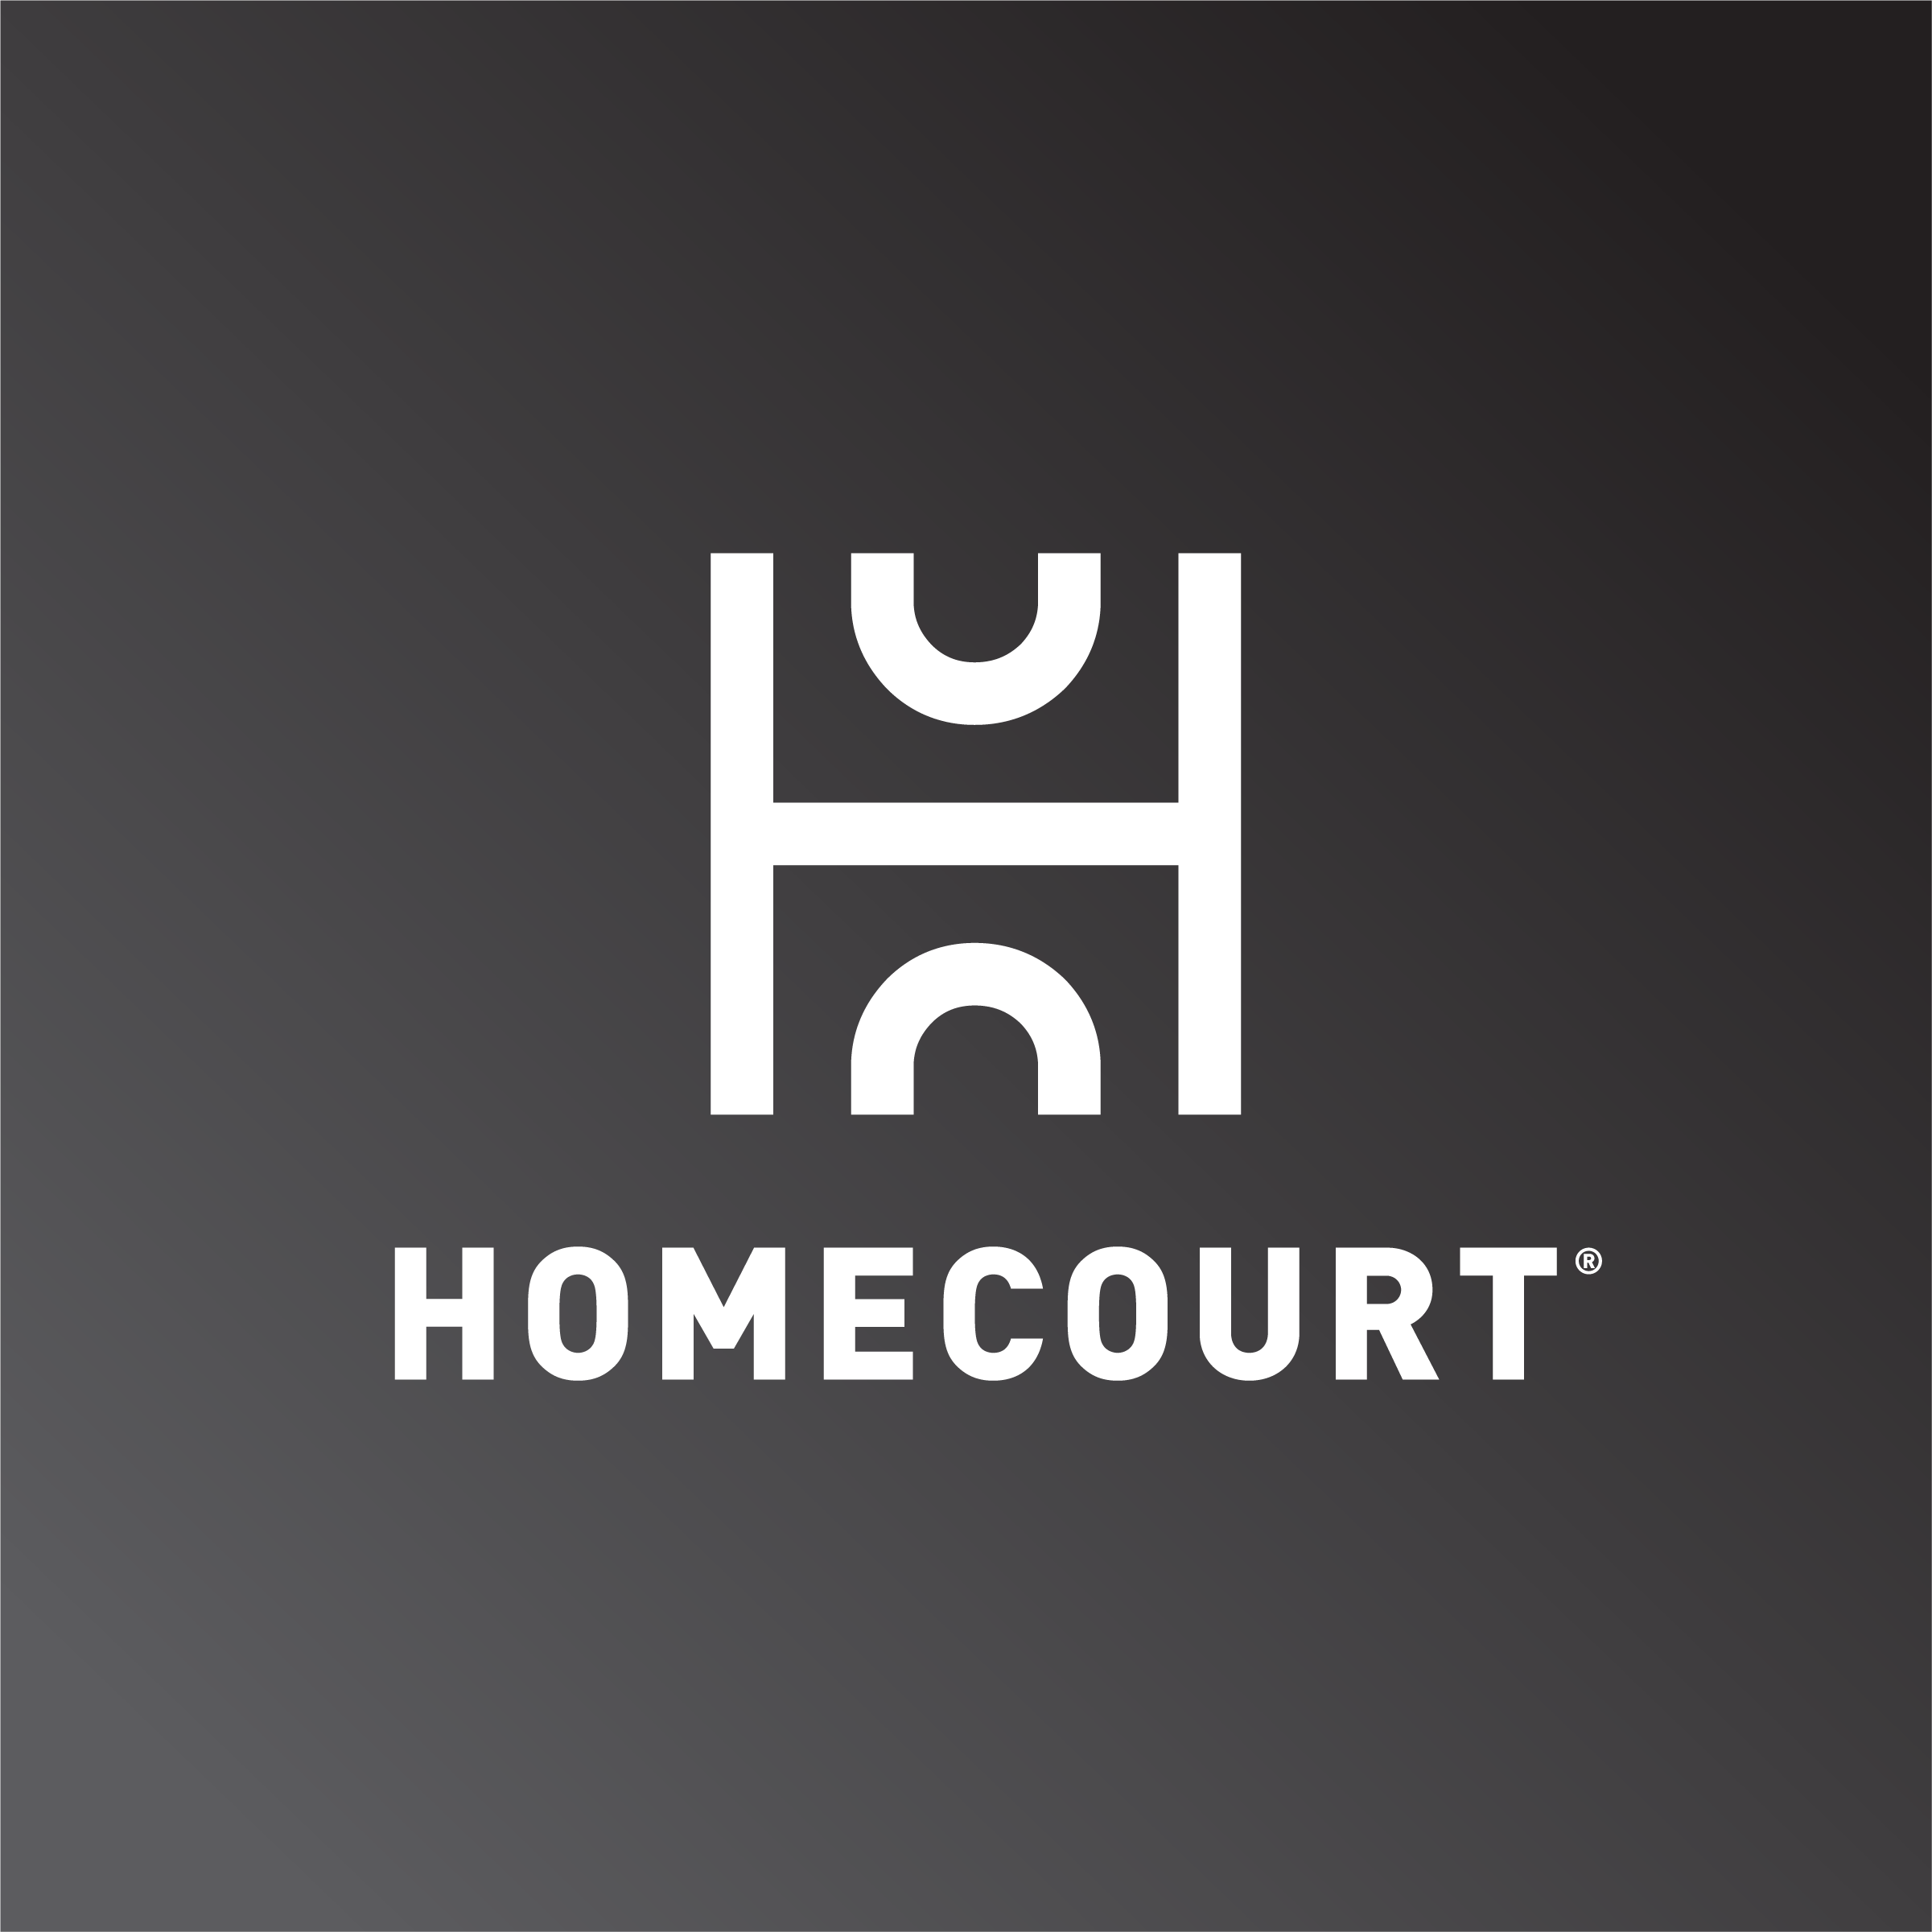 Avoid using HomeCourt logo on a gradient background.